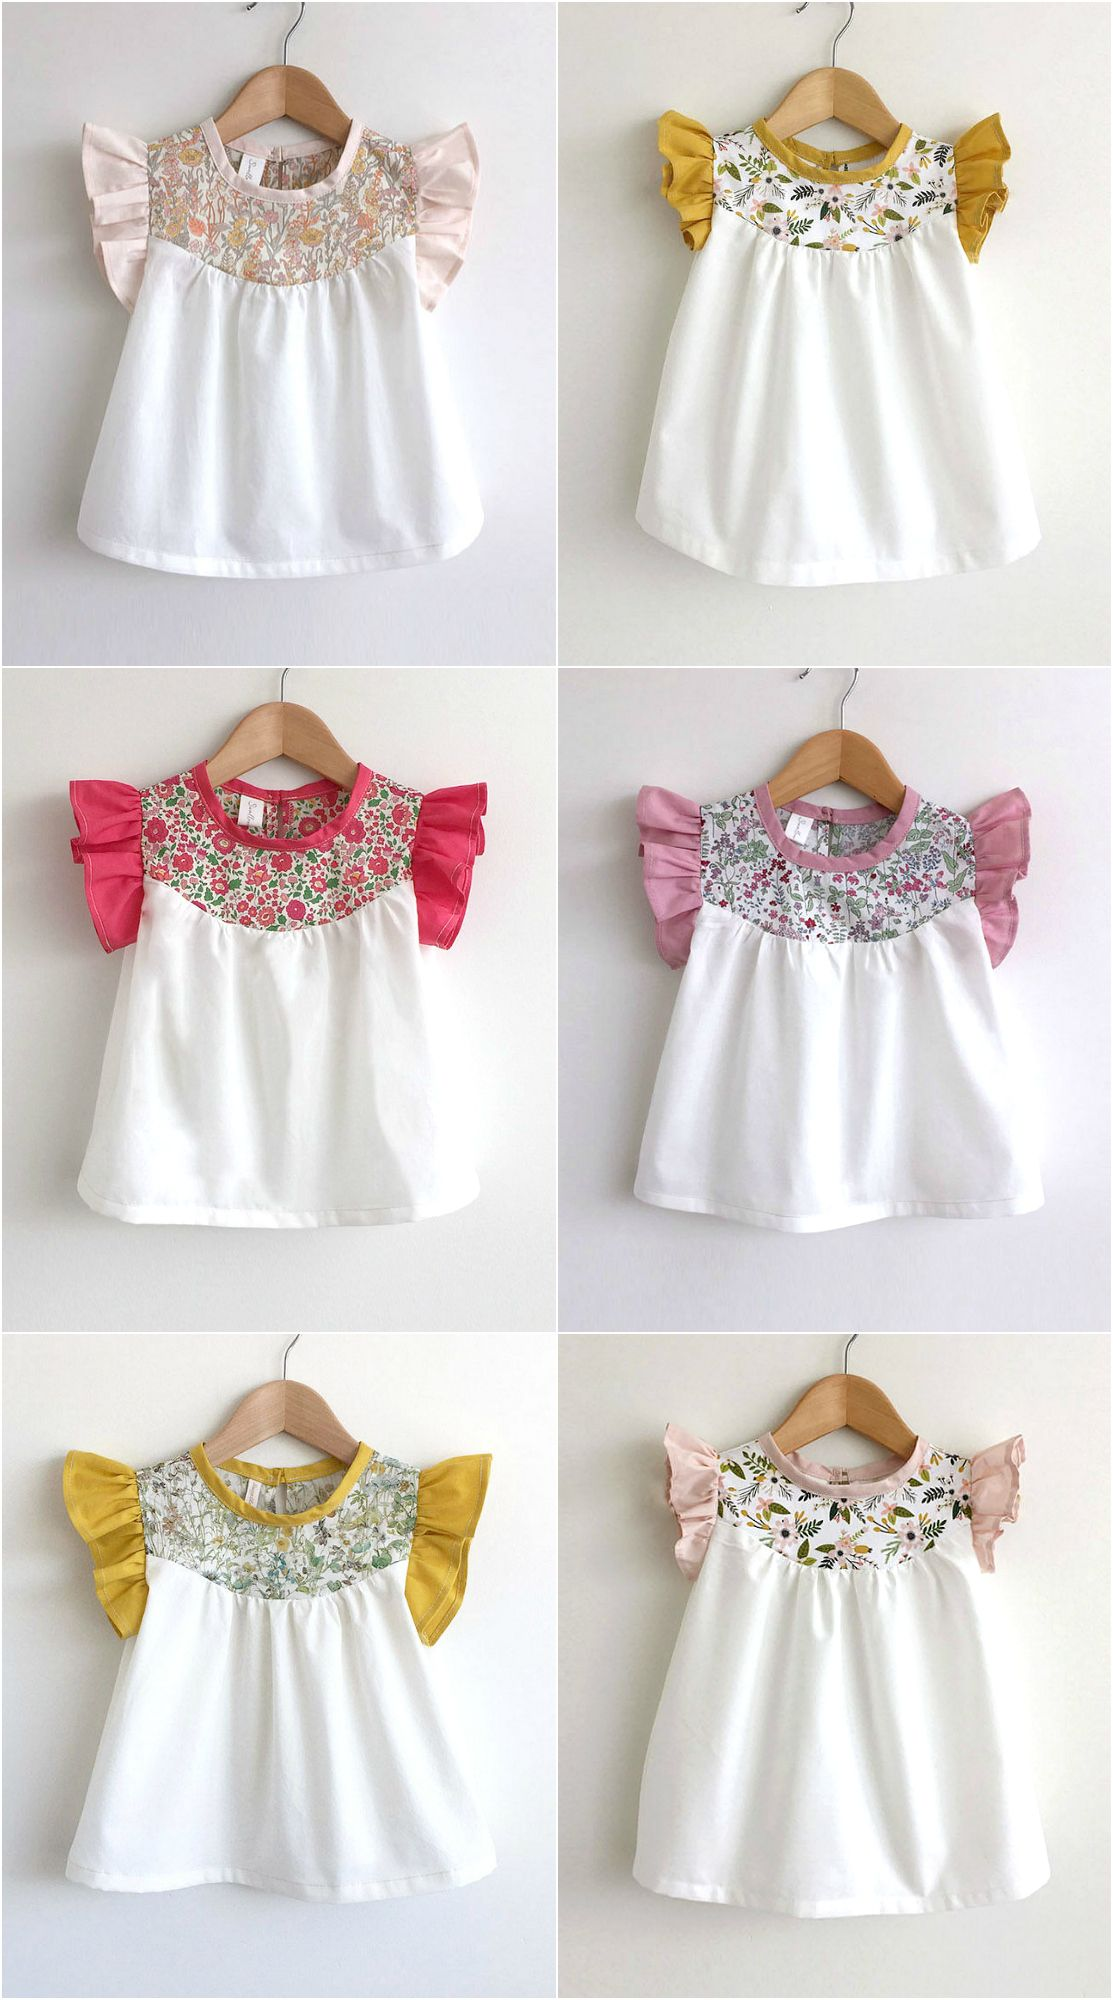 Girls Handmade Cotton Blouses With Liberty Floral Detailing ...